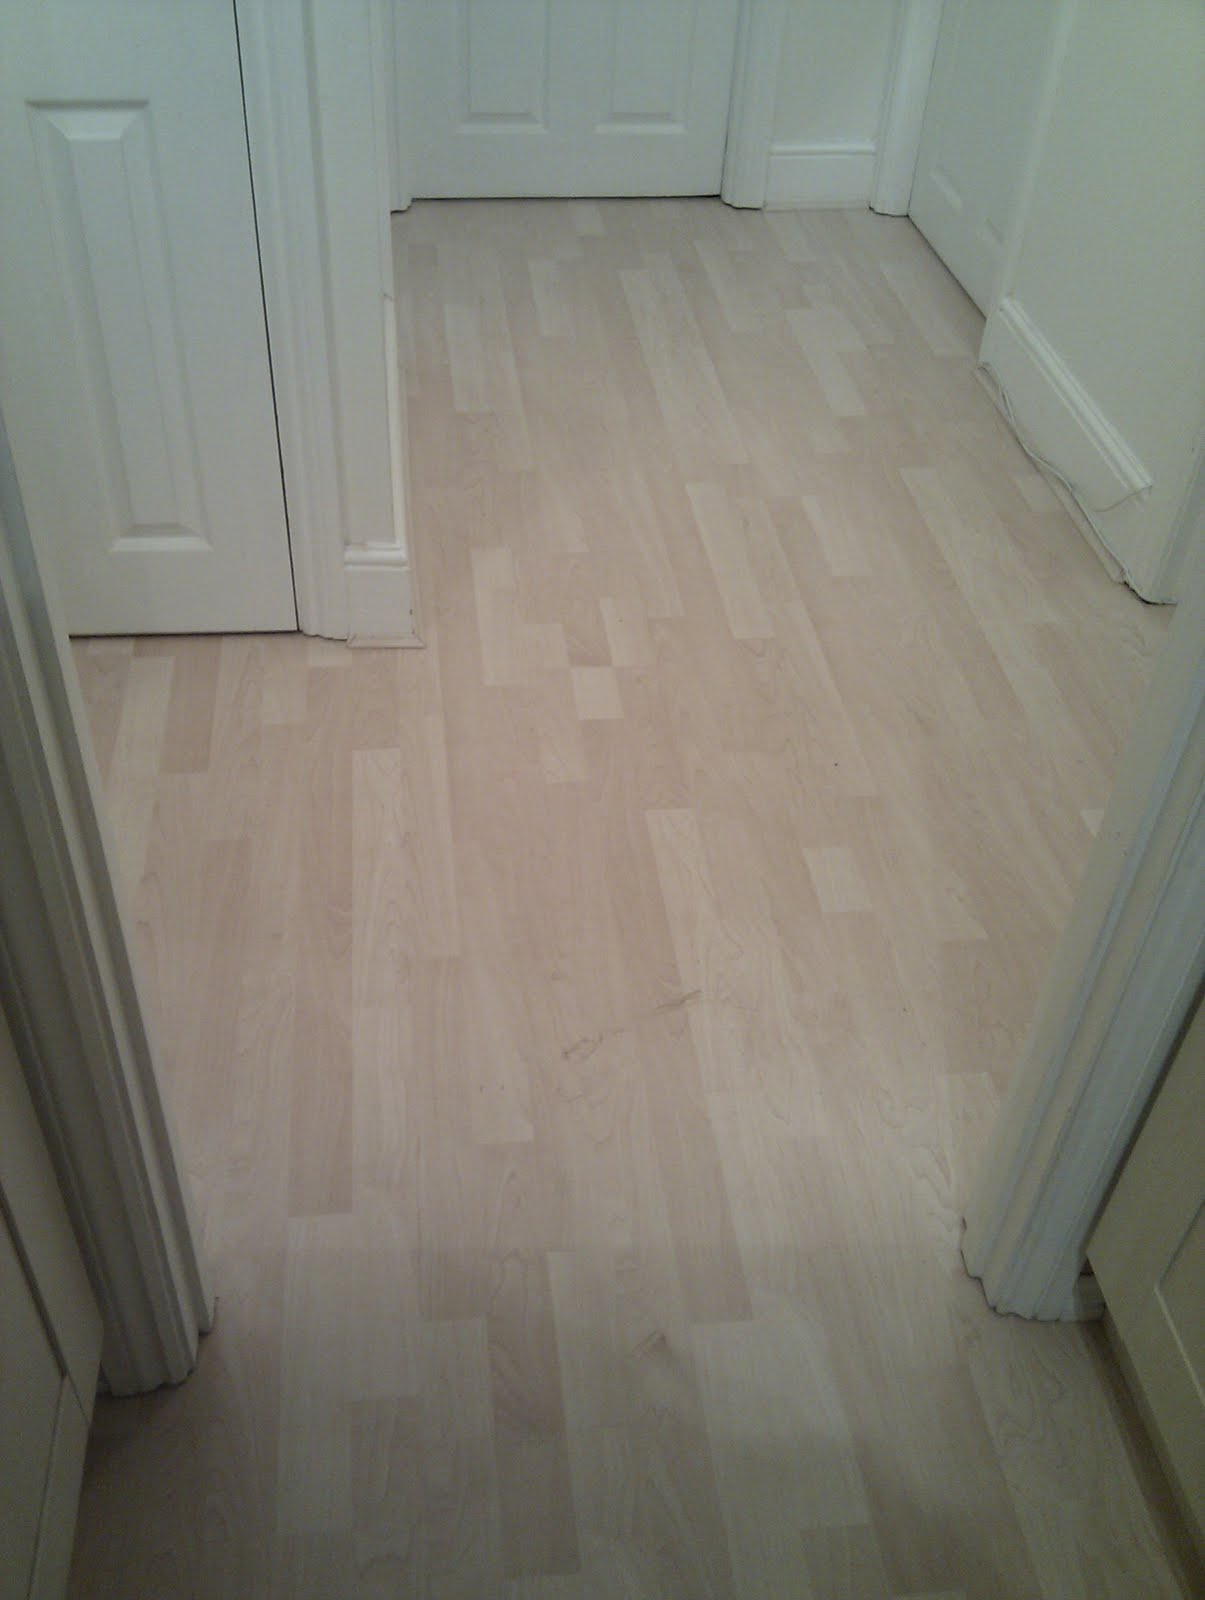 Tom Flooring Ealing Laminate Wood Flooring Kitchen